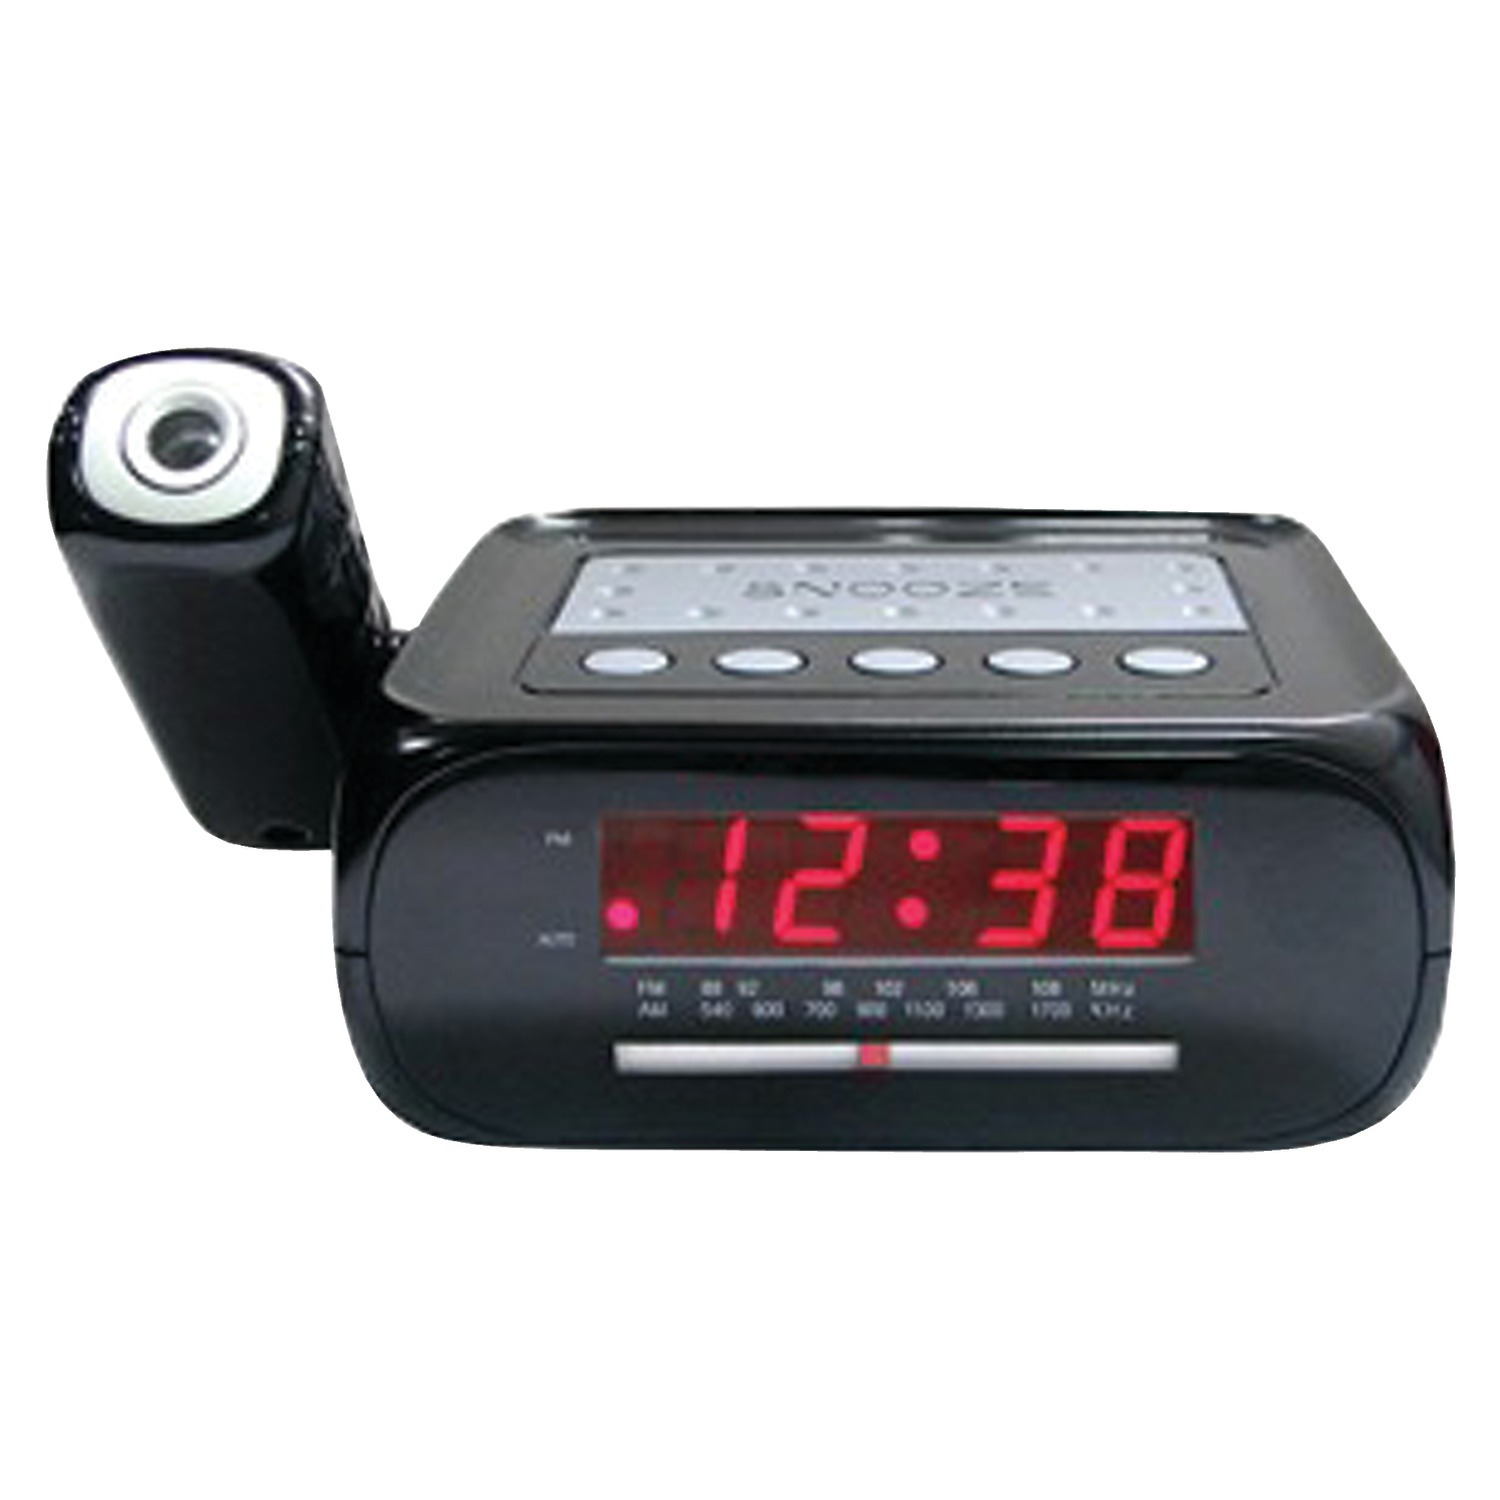 projection alarm clock radio Best alarm clocks of electrohome projection you want to choose a clock that has a radio alarm or a bluetooth alarm that allows you to broadcast content.